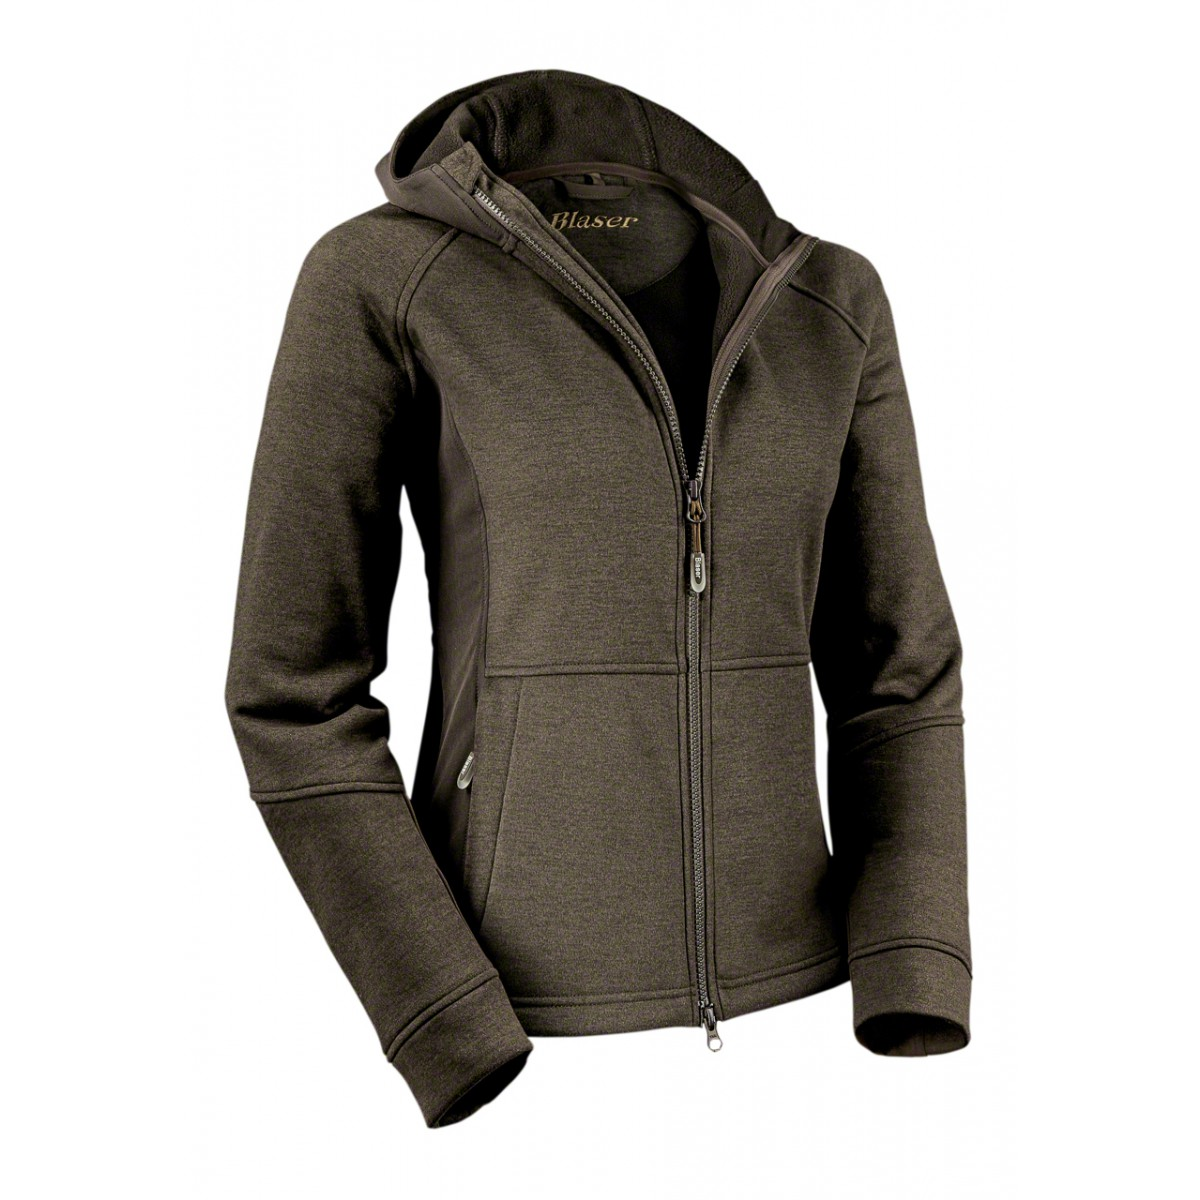 Blaser ACTIVE Fleece Jacket Hanna Női Kabát 115066-008/675